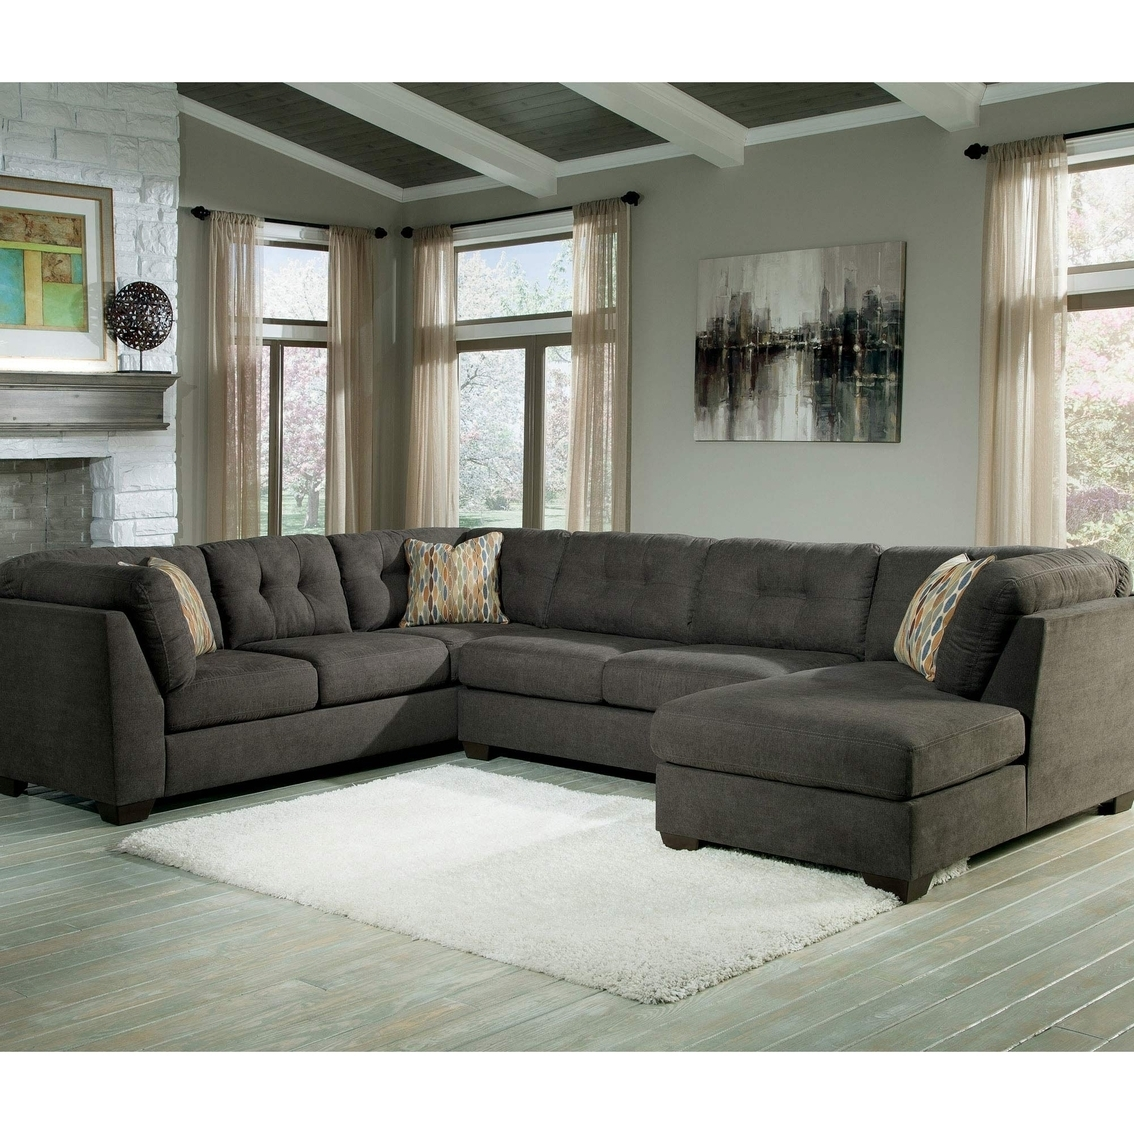 3 Pc Sectional Sofa With Chaise | Home Furniture Ideas with Gordon 3 Piece Sectionals With Raf Chaise (Image 2 of 30)